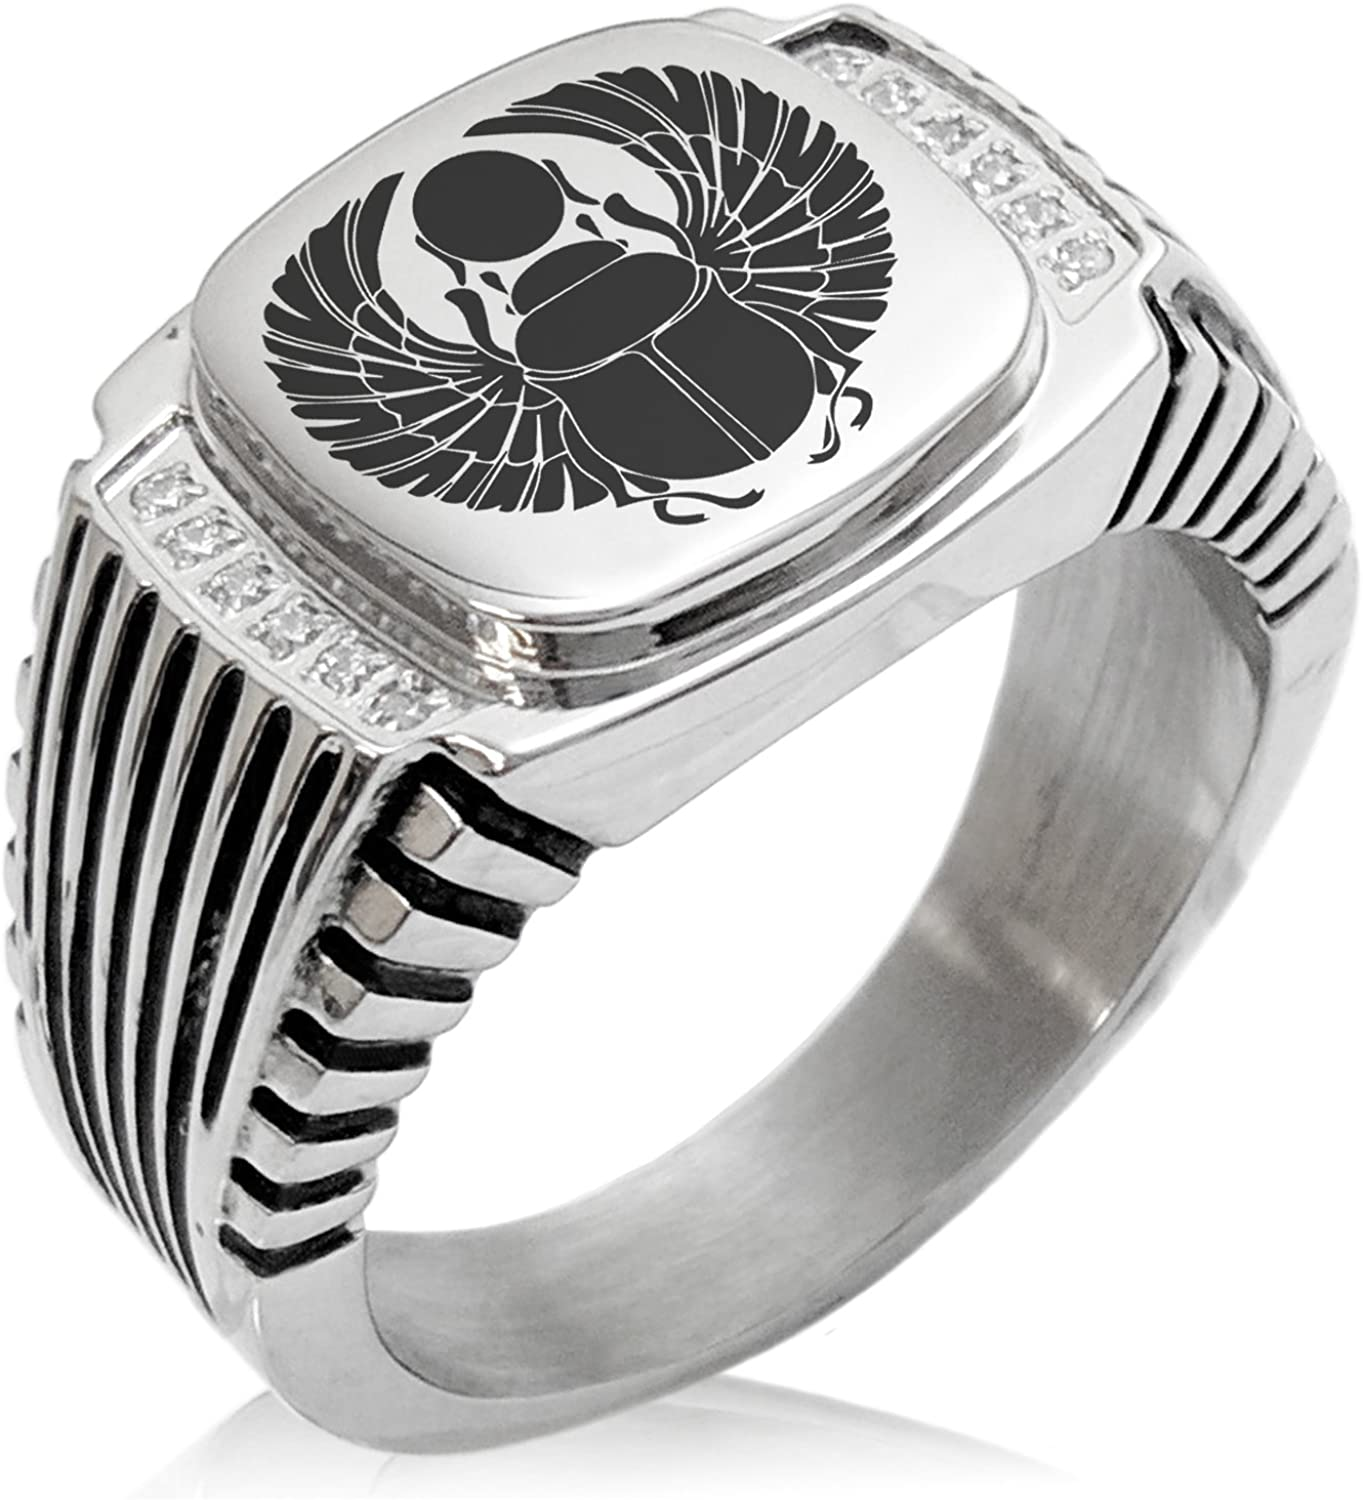 Tioneer Stainless Steel Scarab Beetle Rising Sun CZ Ribbed Needle Stripe Pattern Biker Style Polished Ring